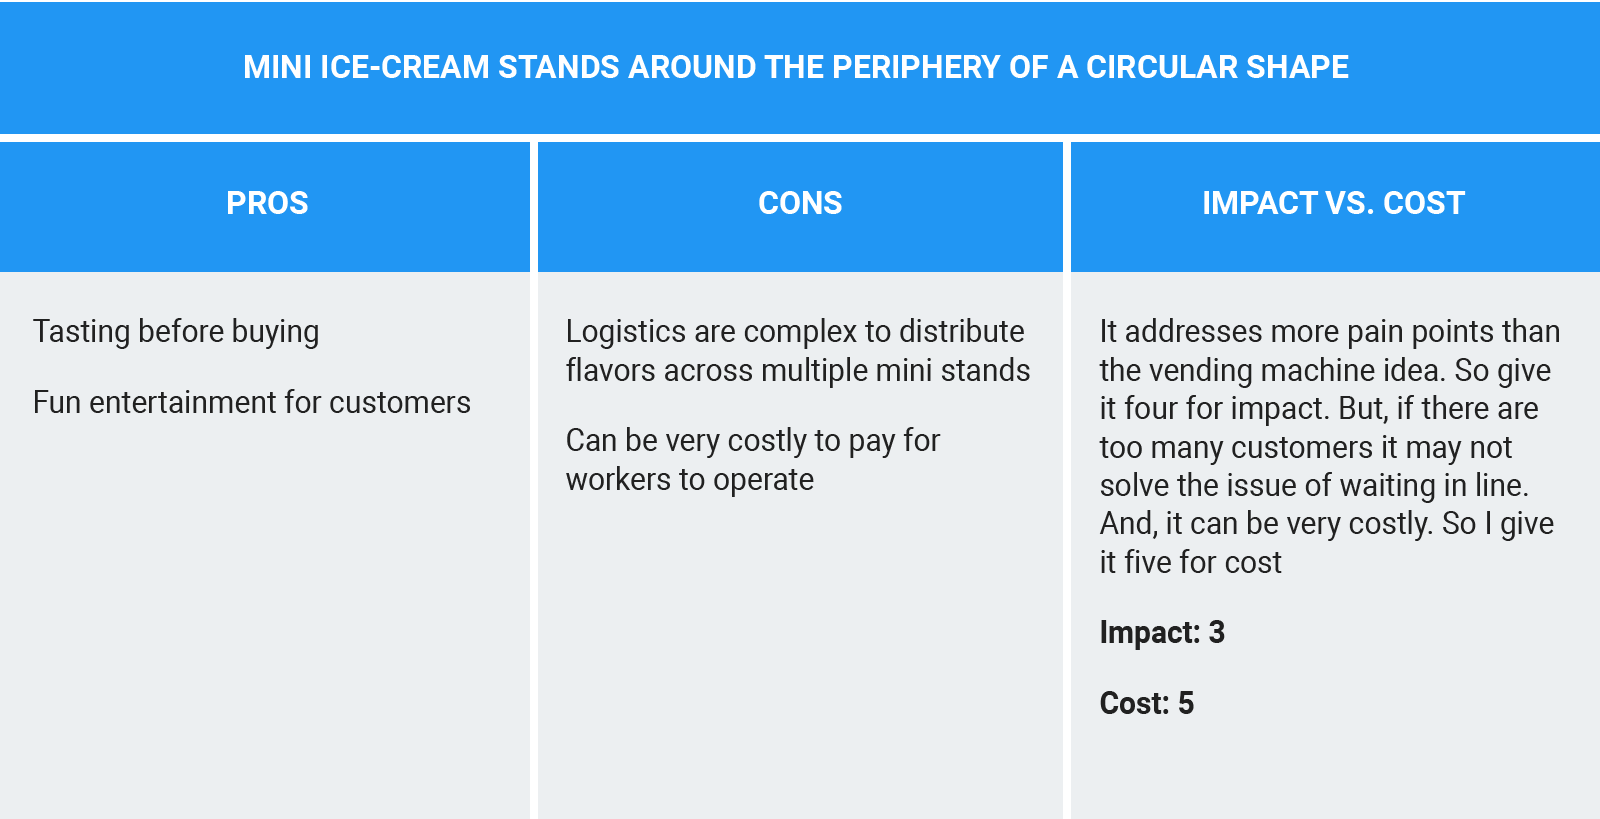 Tracking the pros and cons for the Mini Ice-cream Stands Around the Periphery of a Circular Shape idea and evaluating how the idea scores relative to impact vs. cost